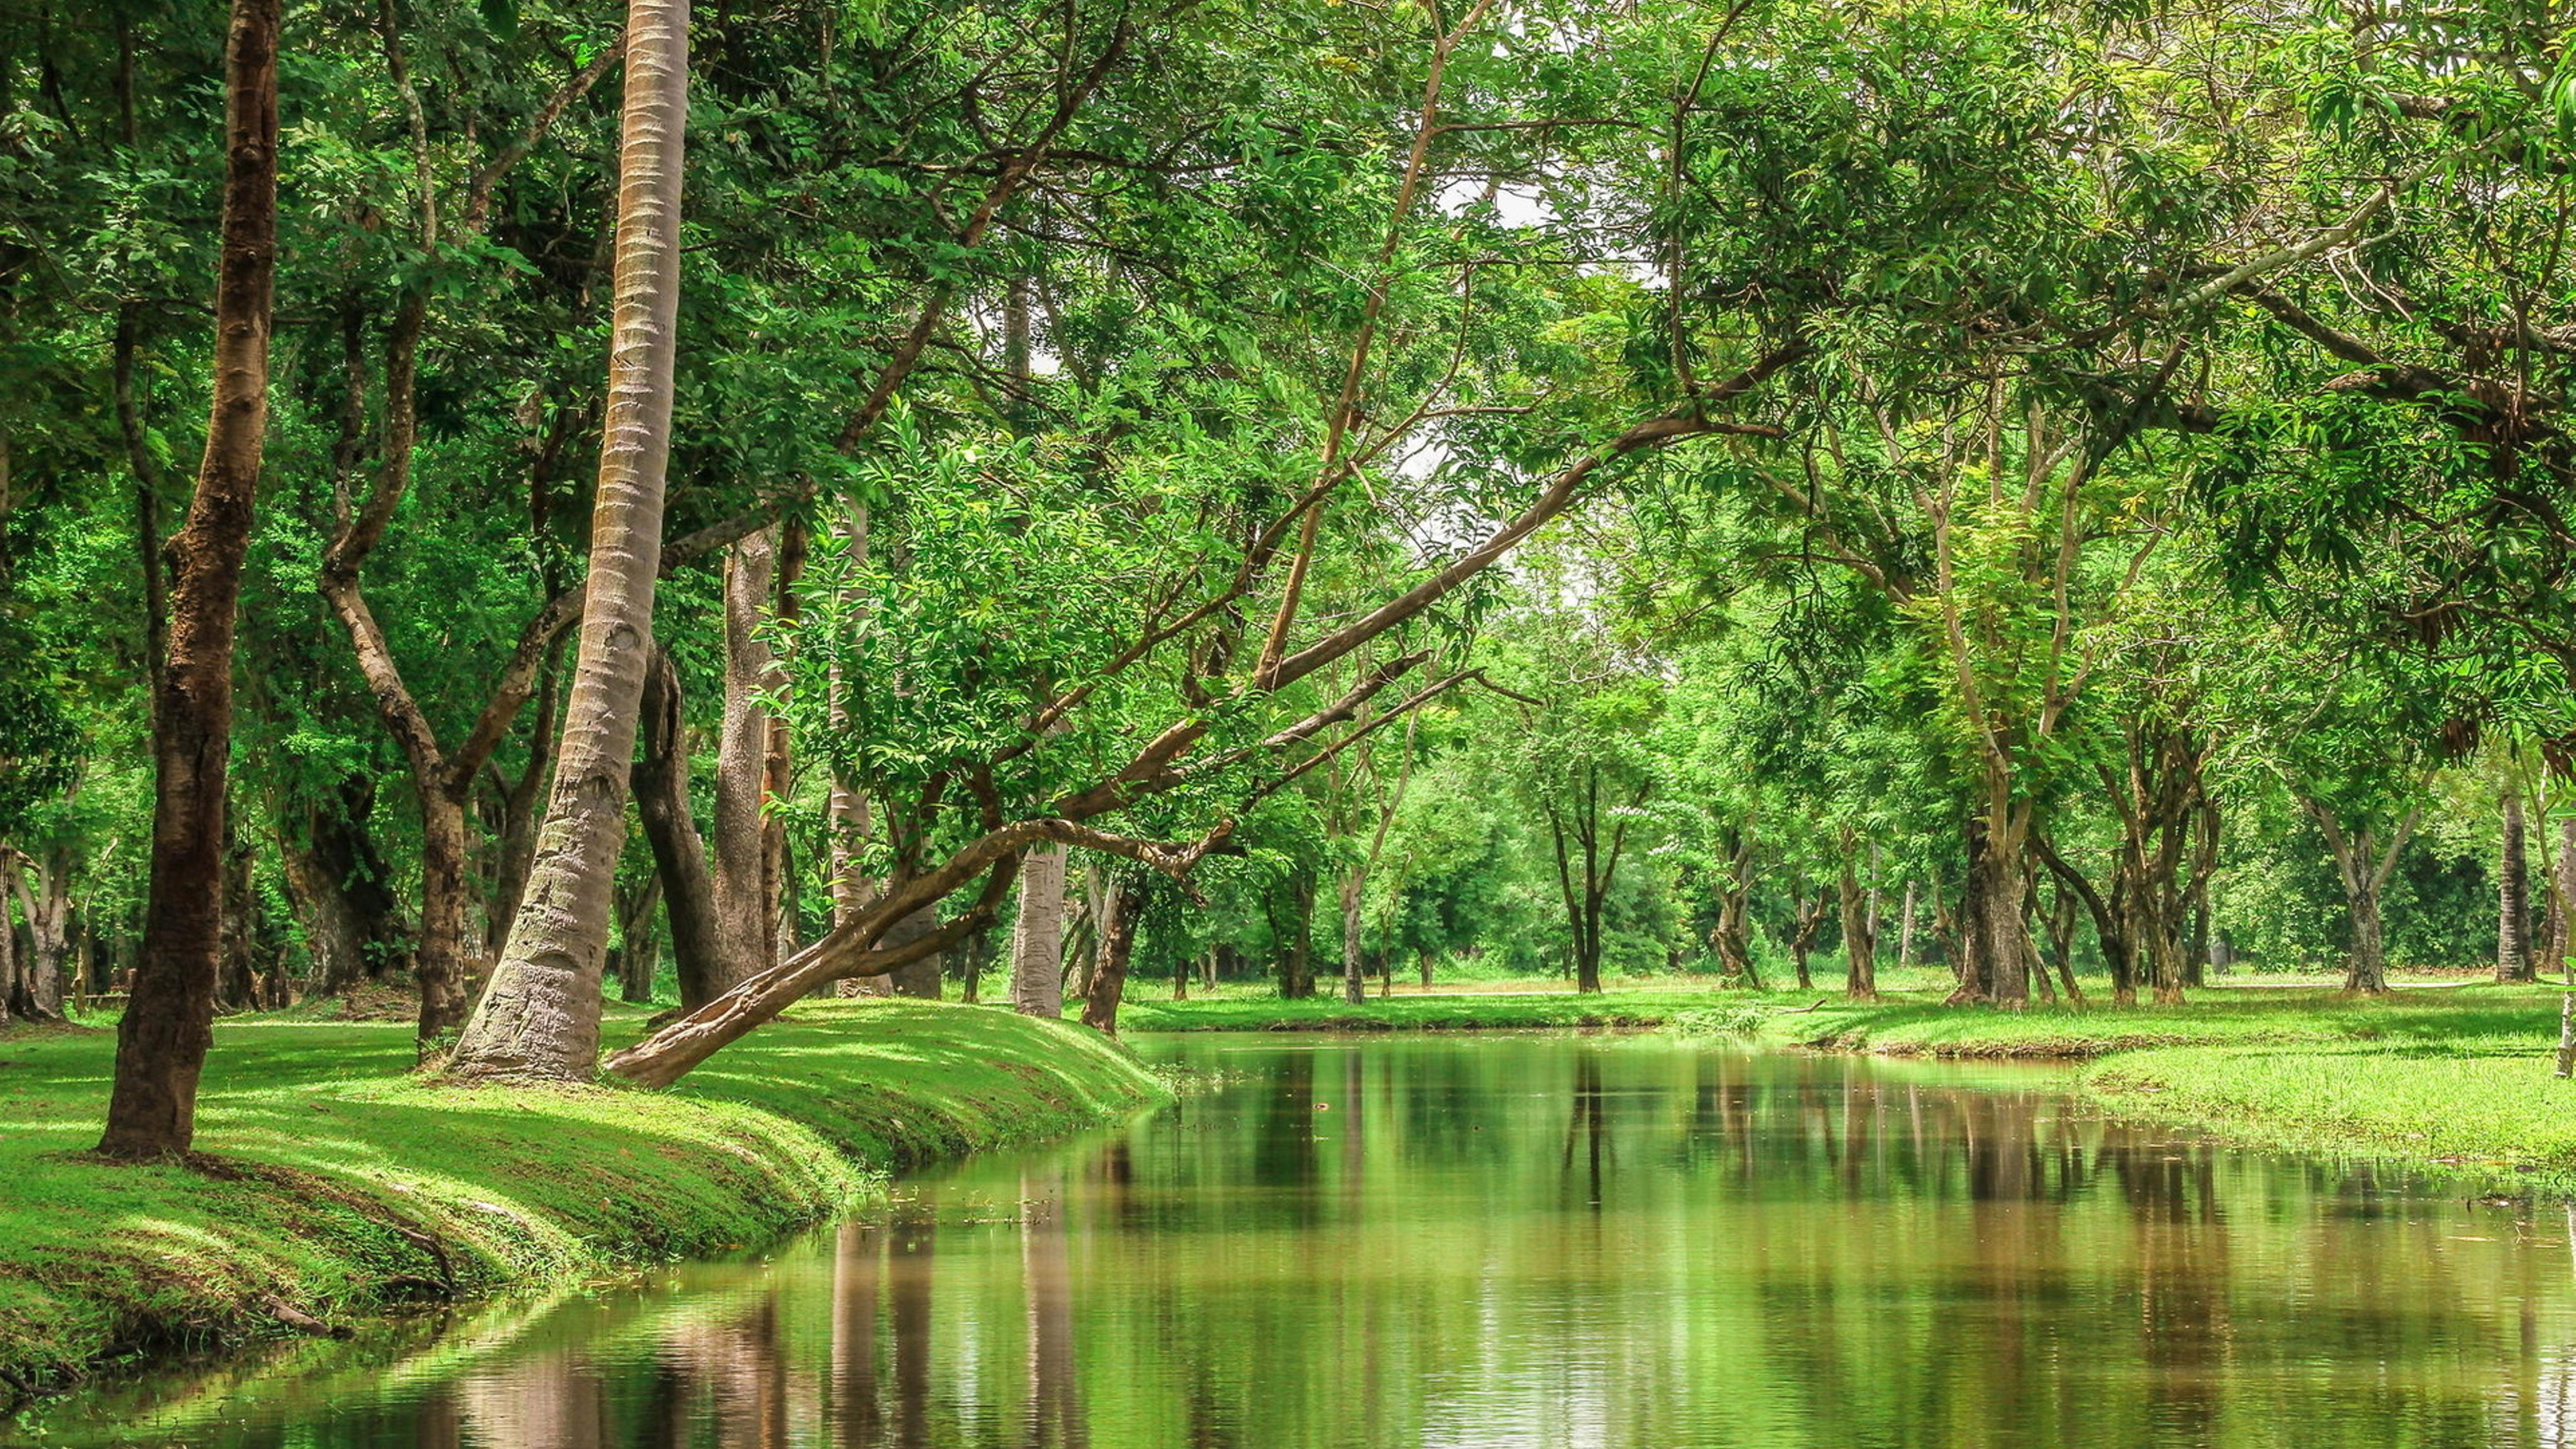 Beautiful Nature River In The Green Forest Wallpaper Download 5120x2880